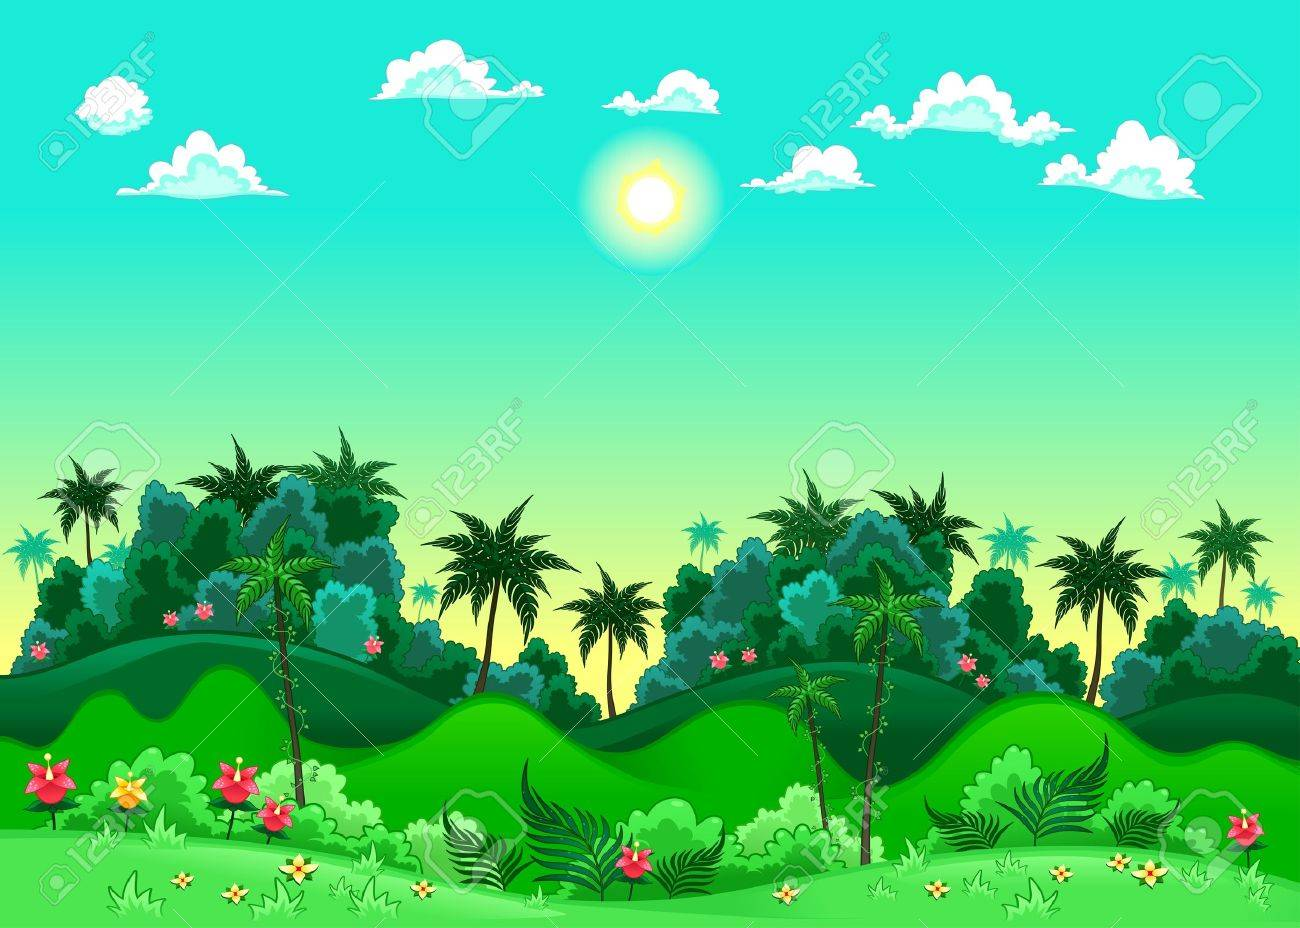 Green forest. Vector illustration. The sides repeat seamlessly for a possible, continuous animation. Stock Vector - 17429297